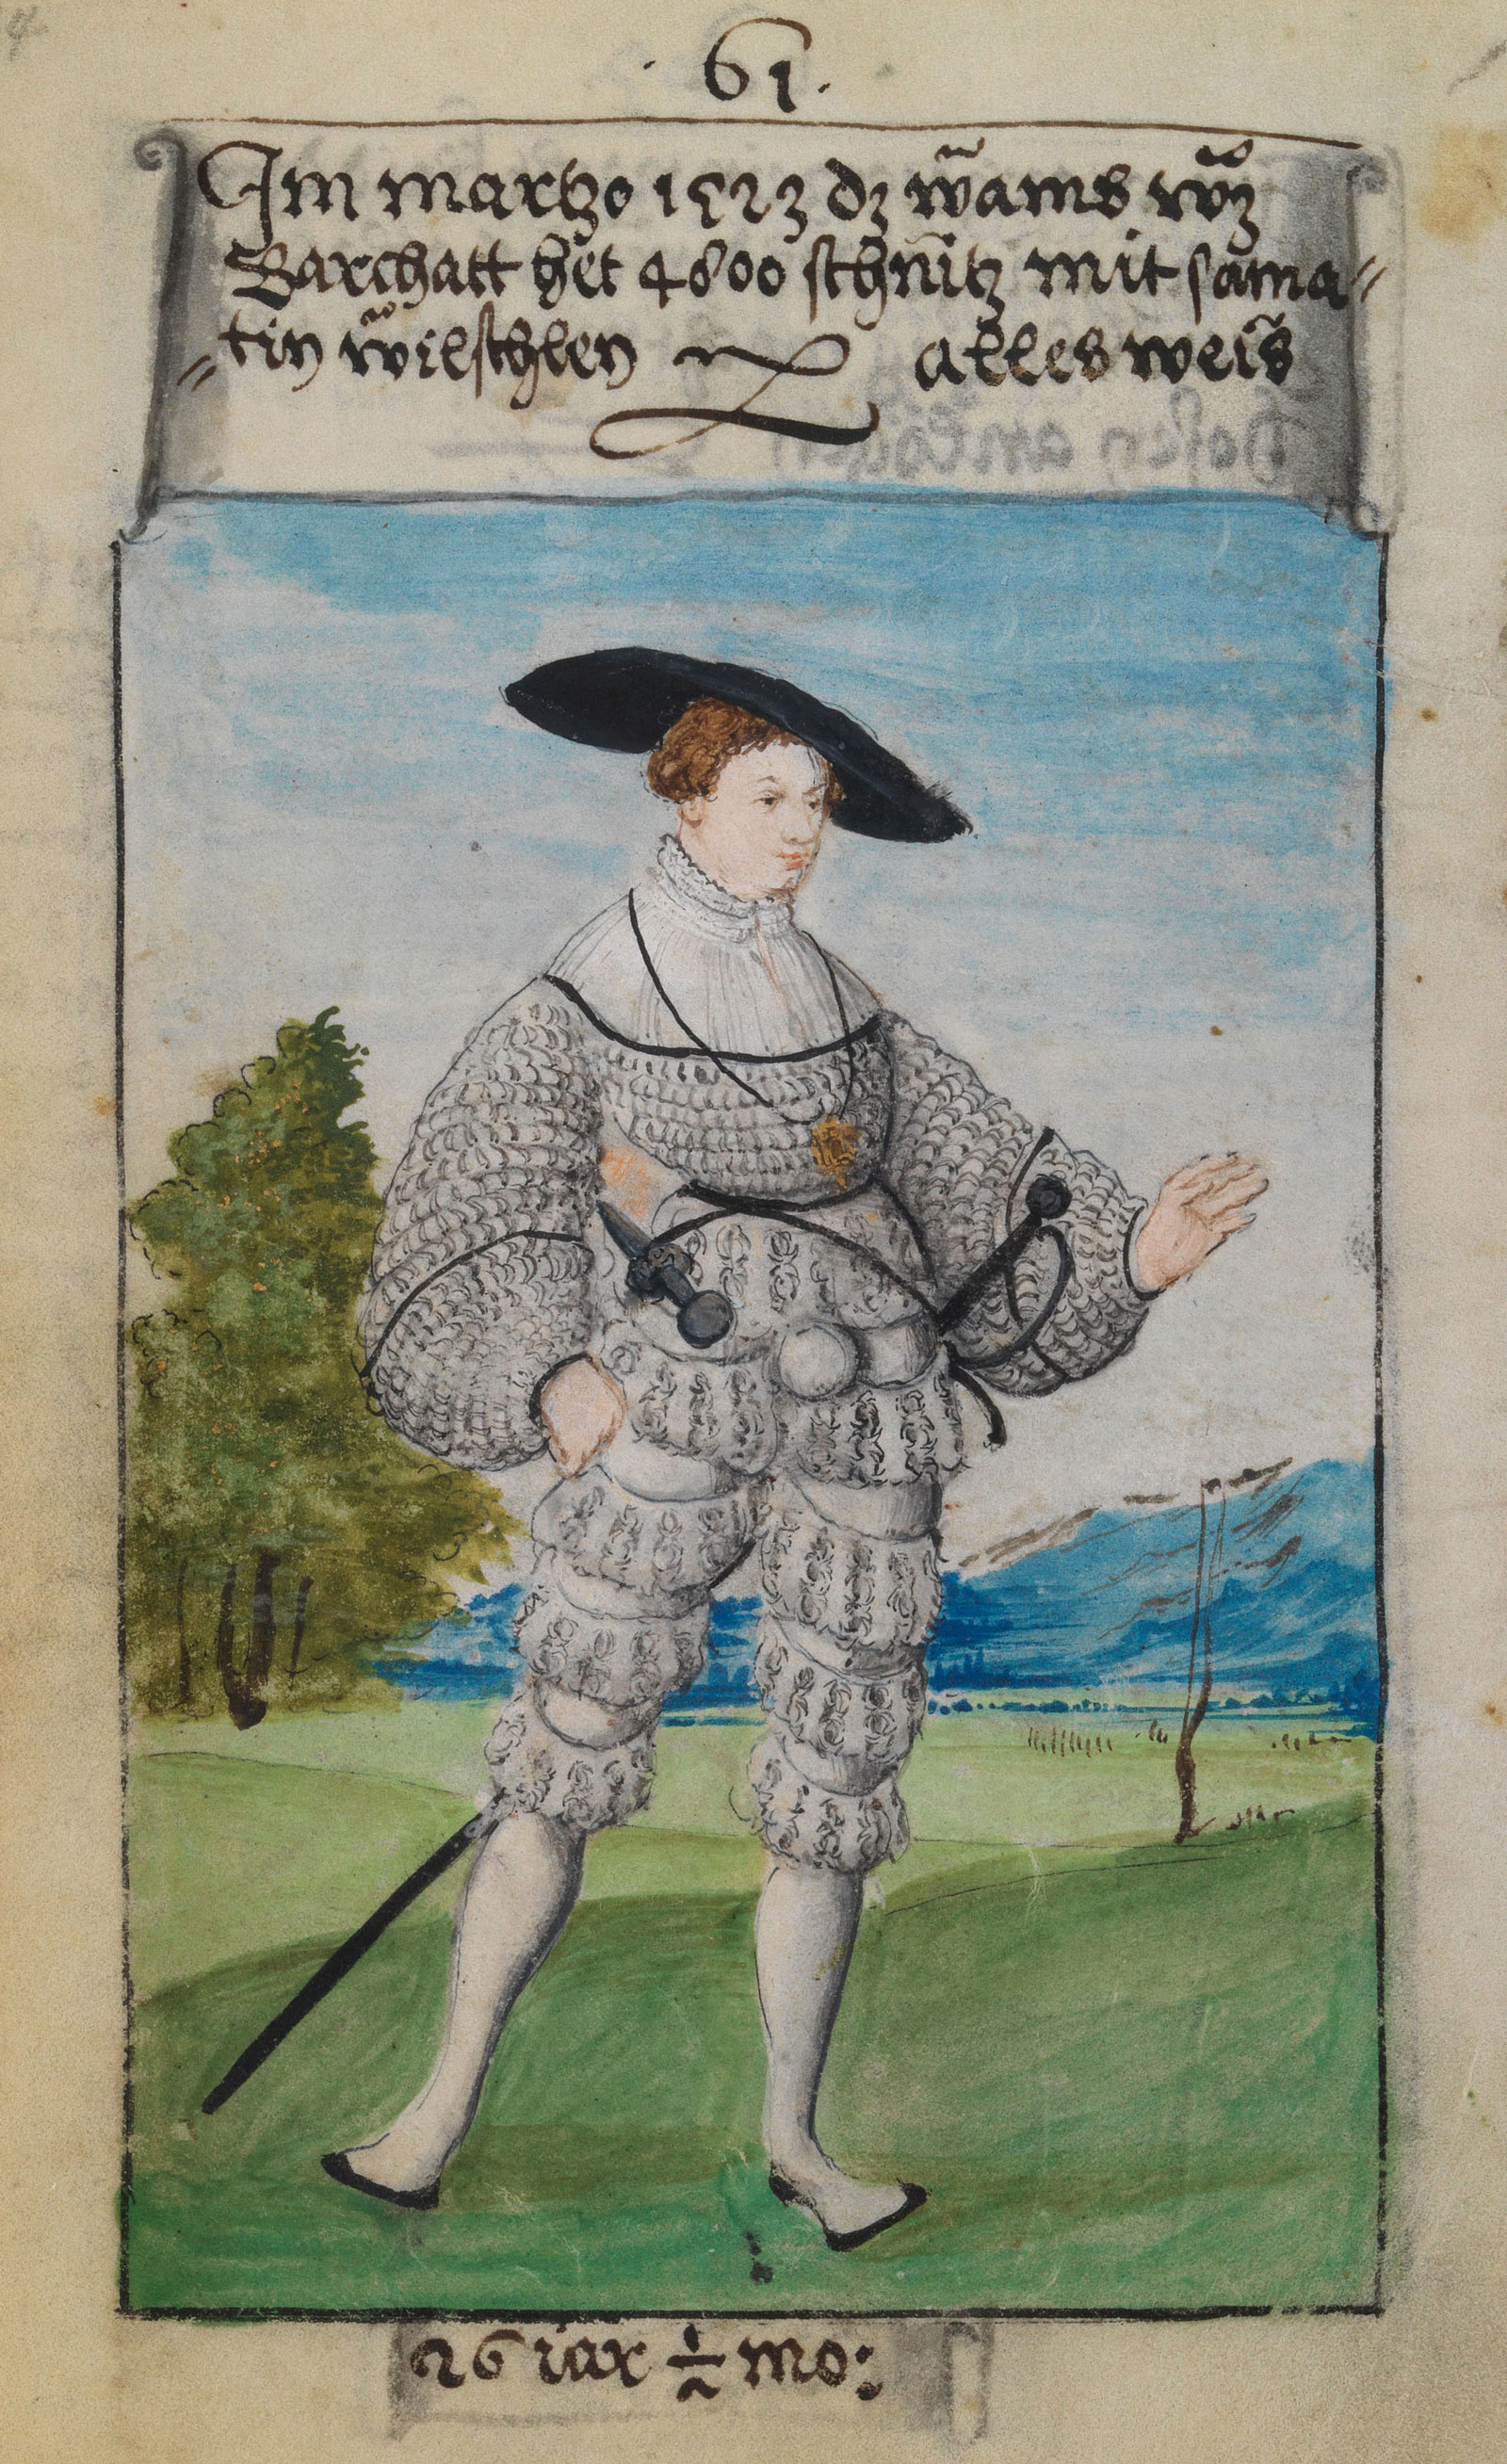 """A page from The First Book of Fashion; the text above reads, """"In March 1523. The doublet of fustian, which has 4,800 slashes with velvet rolls all in white,"""" and the text below, """"26 years. 1/2 month."""""""